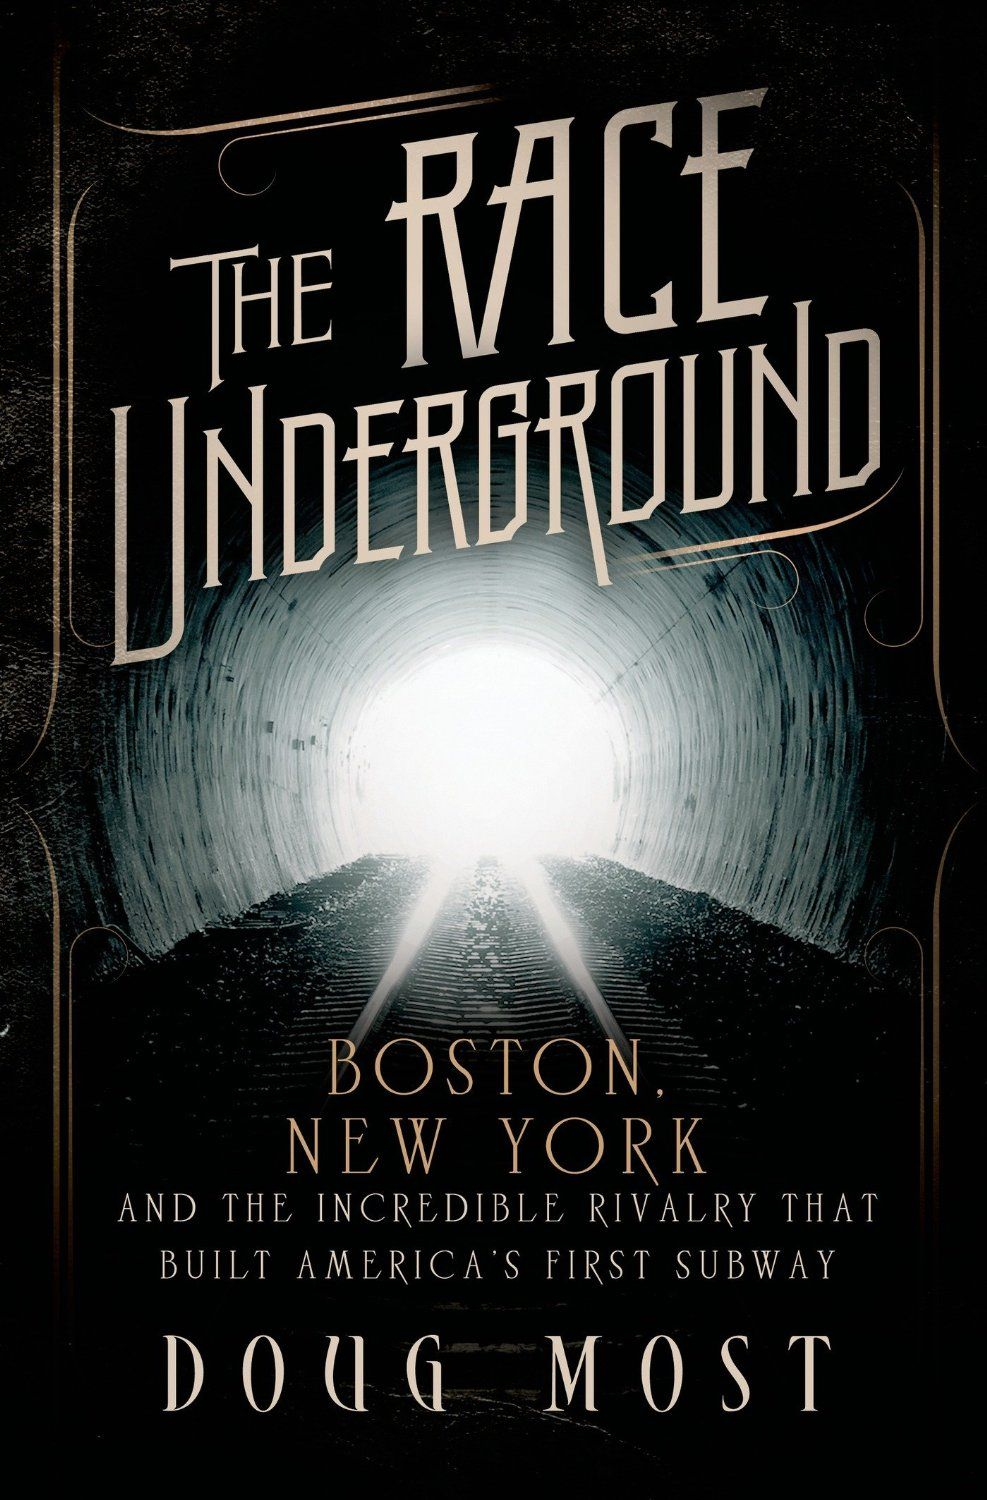 The Race Underground Boston, New York, and the Incredible